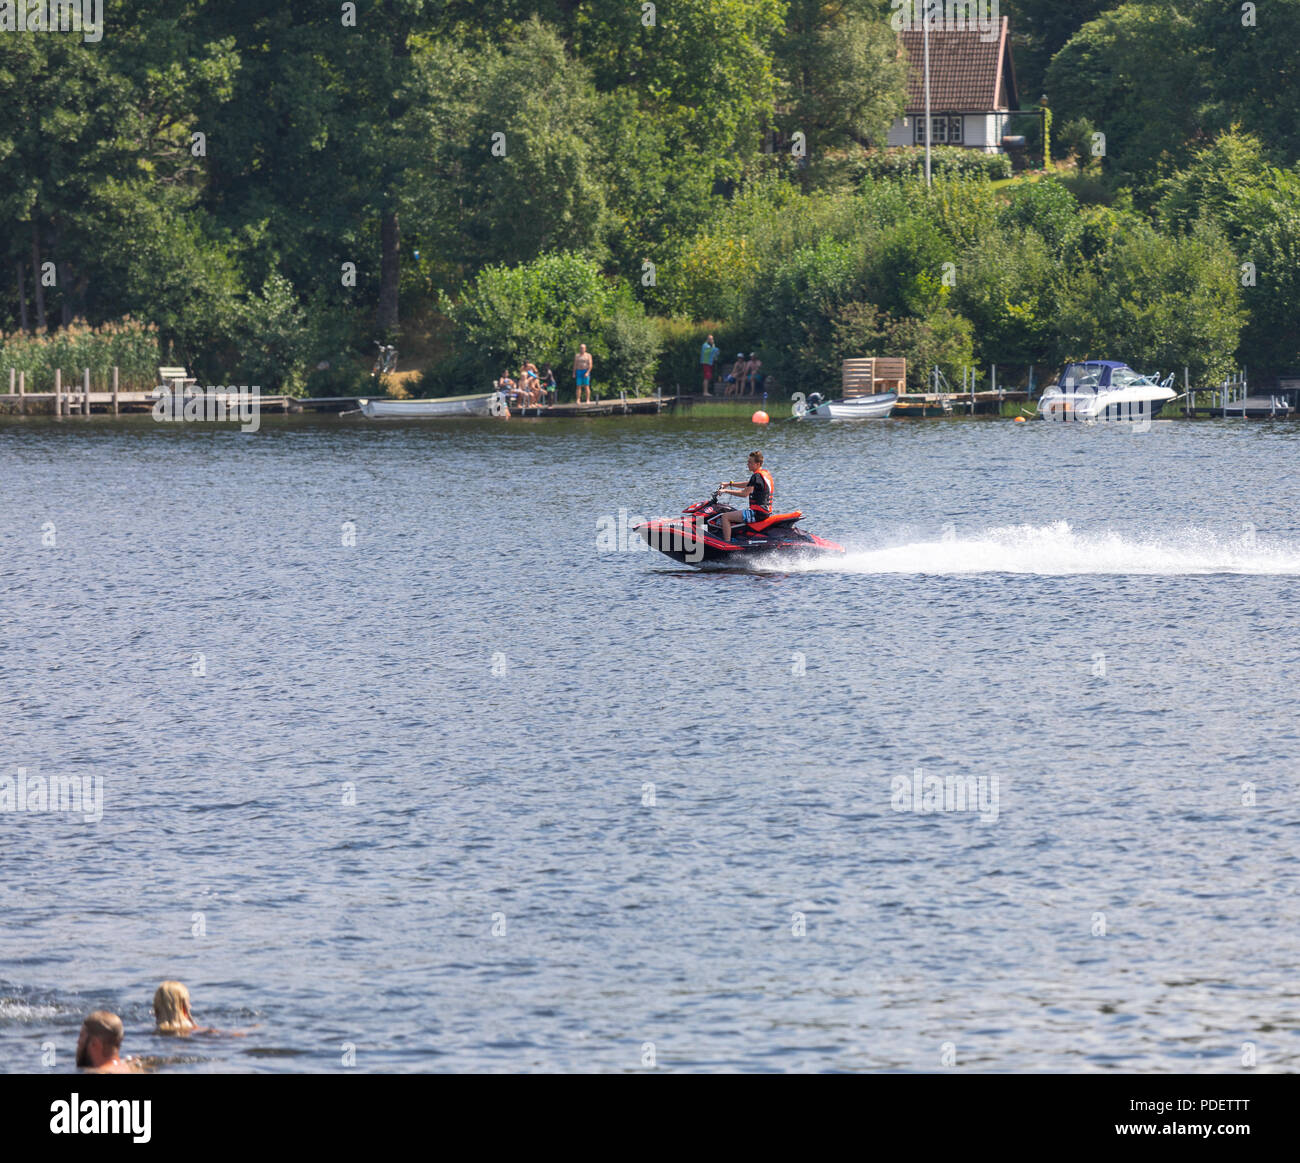 Fast Swimmer Stock Photos & Fast Swimmer Stock Images - Alamy